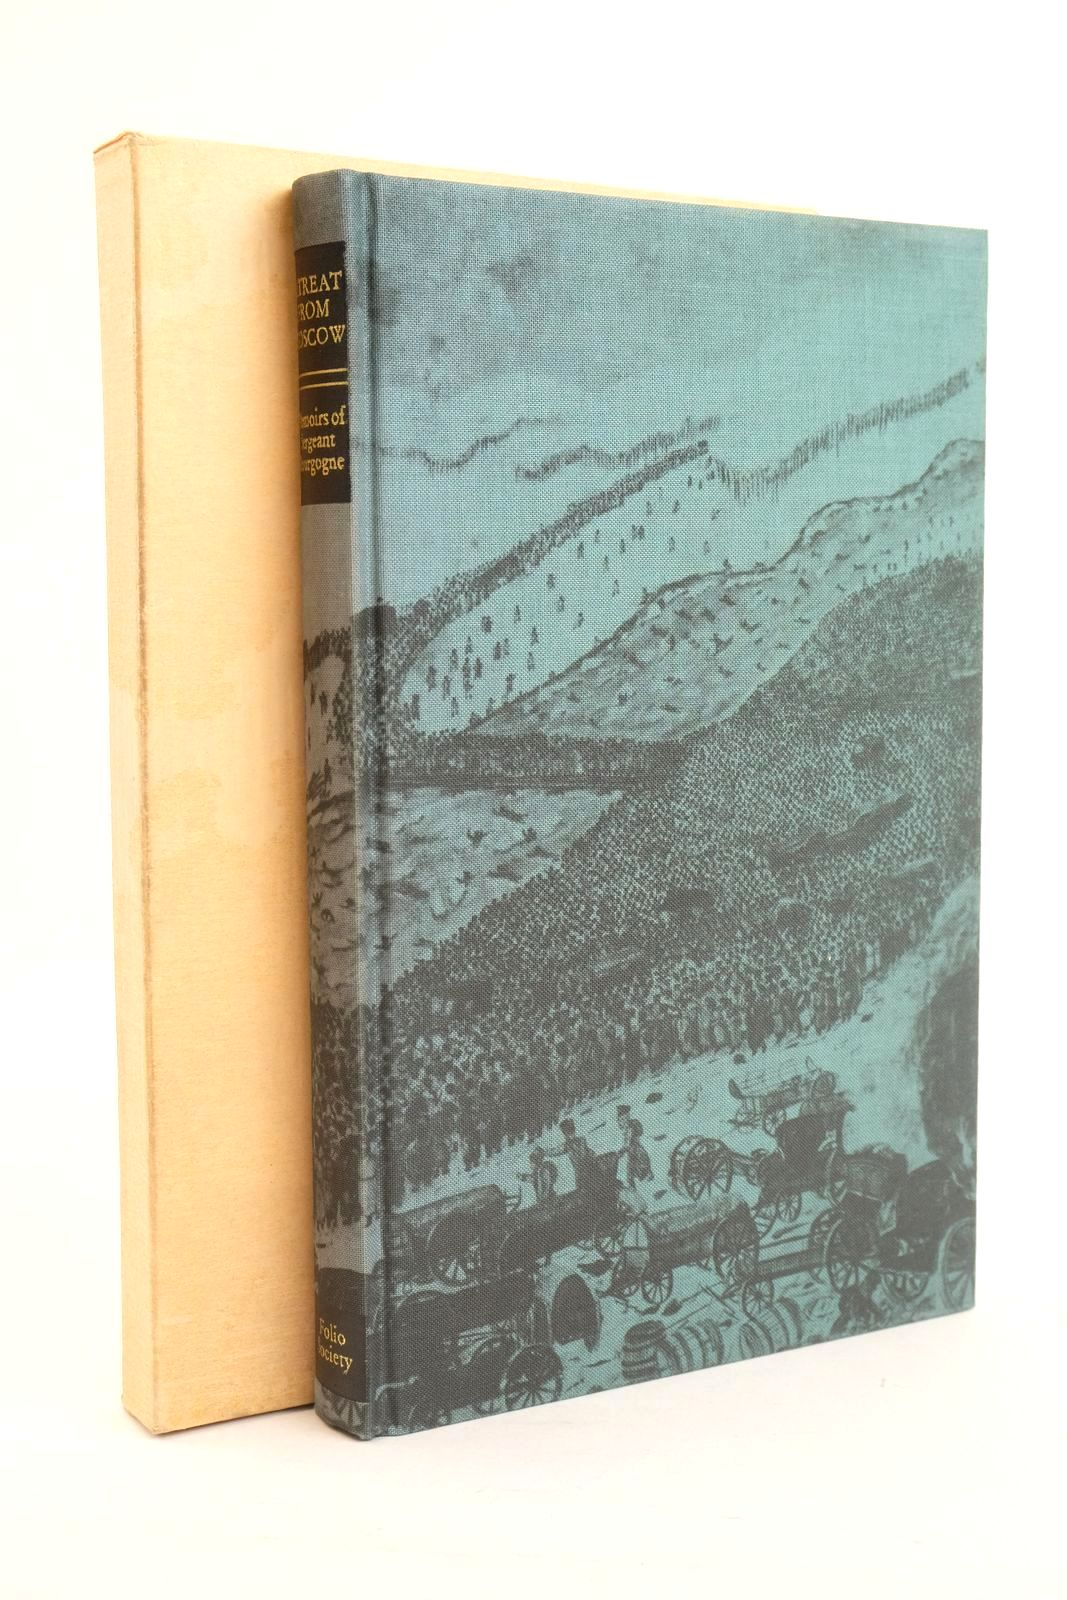 Photo of THE RETREAT FROM MOSCOW written by Bourgogne, Sergeant Cronin, Vincent published by Folio Society (STOCK CODE: 1320127)  for sale by Stella & Rose's Books